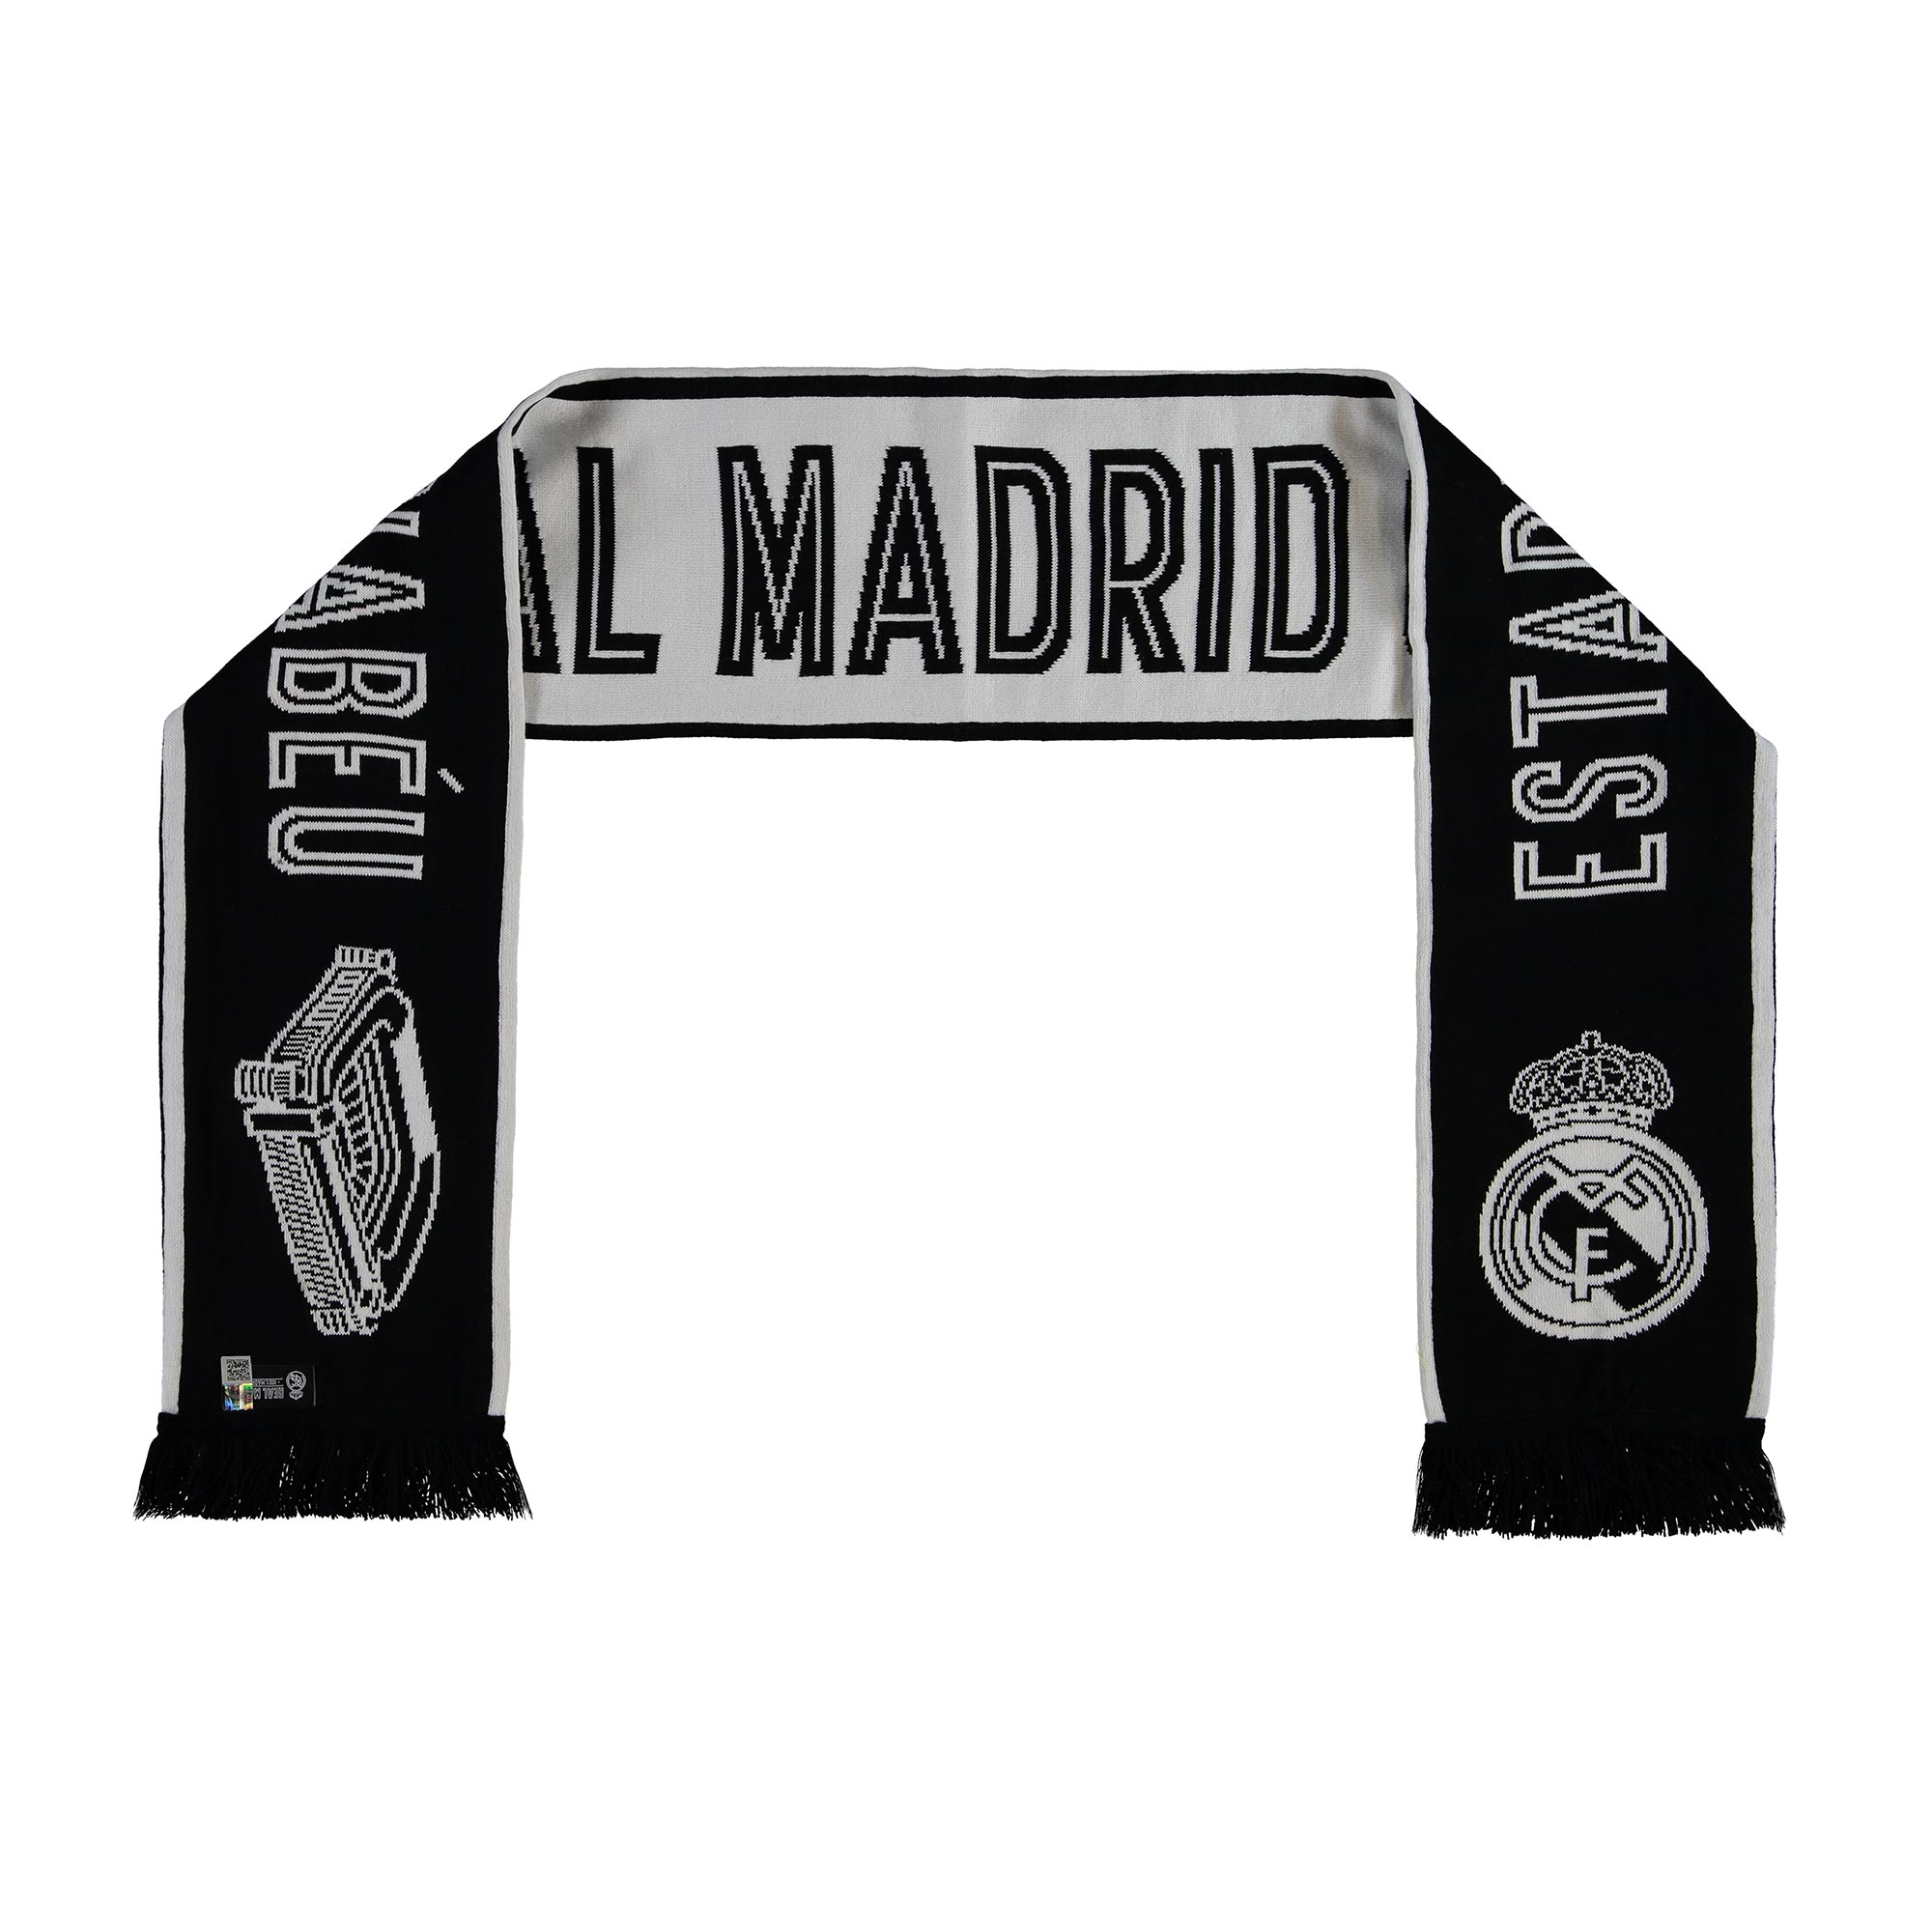 Écharpe de fan Stadium Real Madrid - Blanc/Noir - Adulte